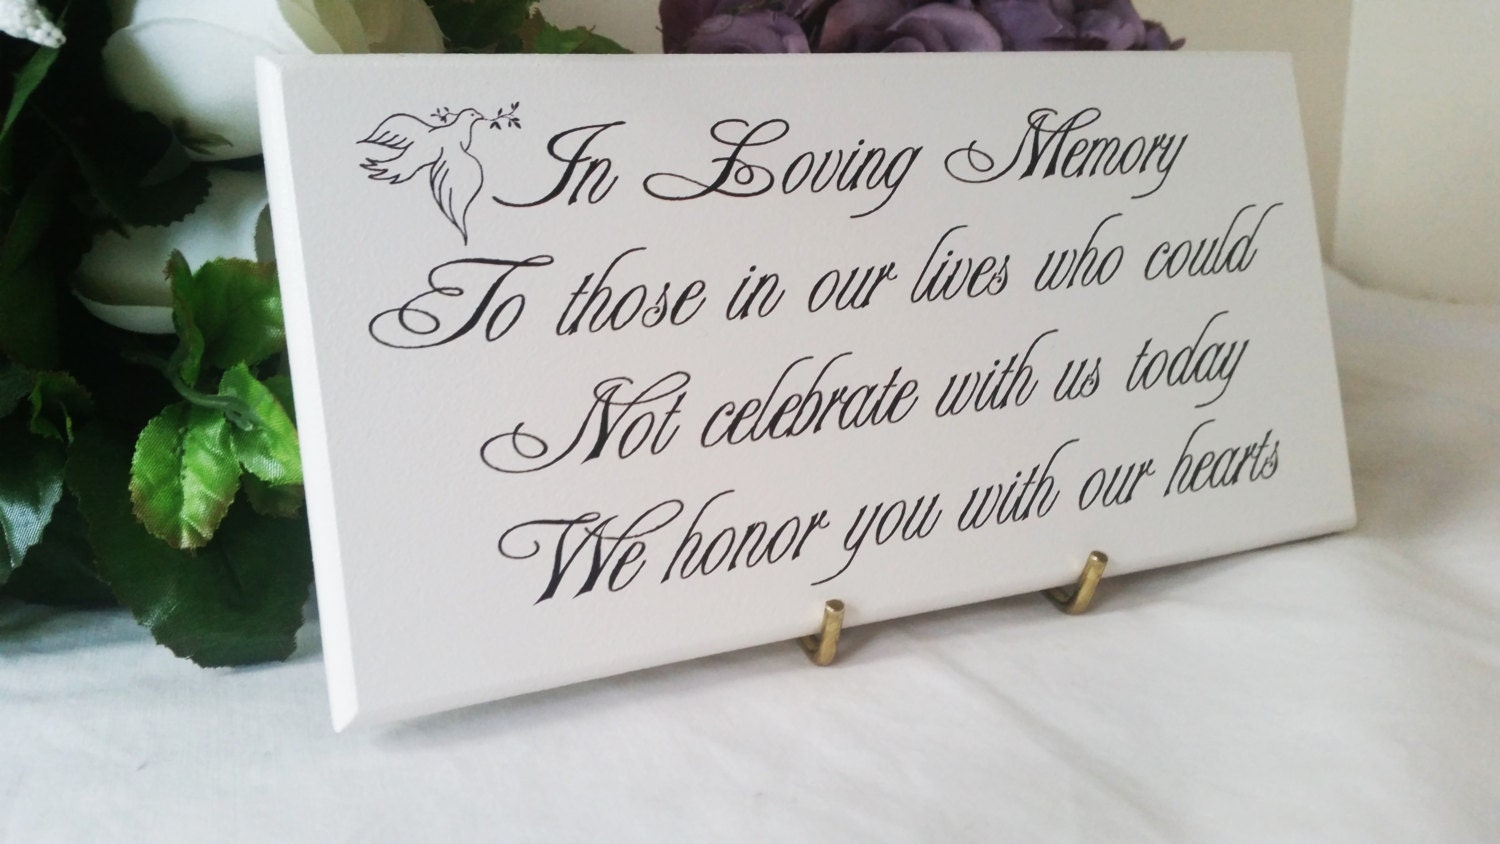 Wedding Memorial Sign In Loving Memory To Those Who Could